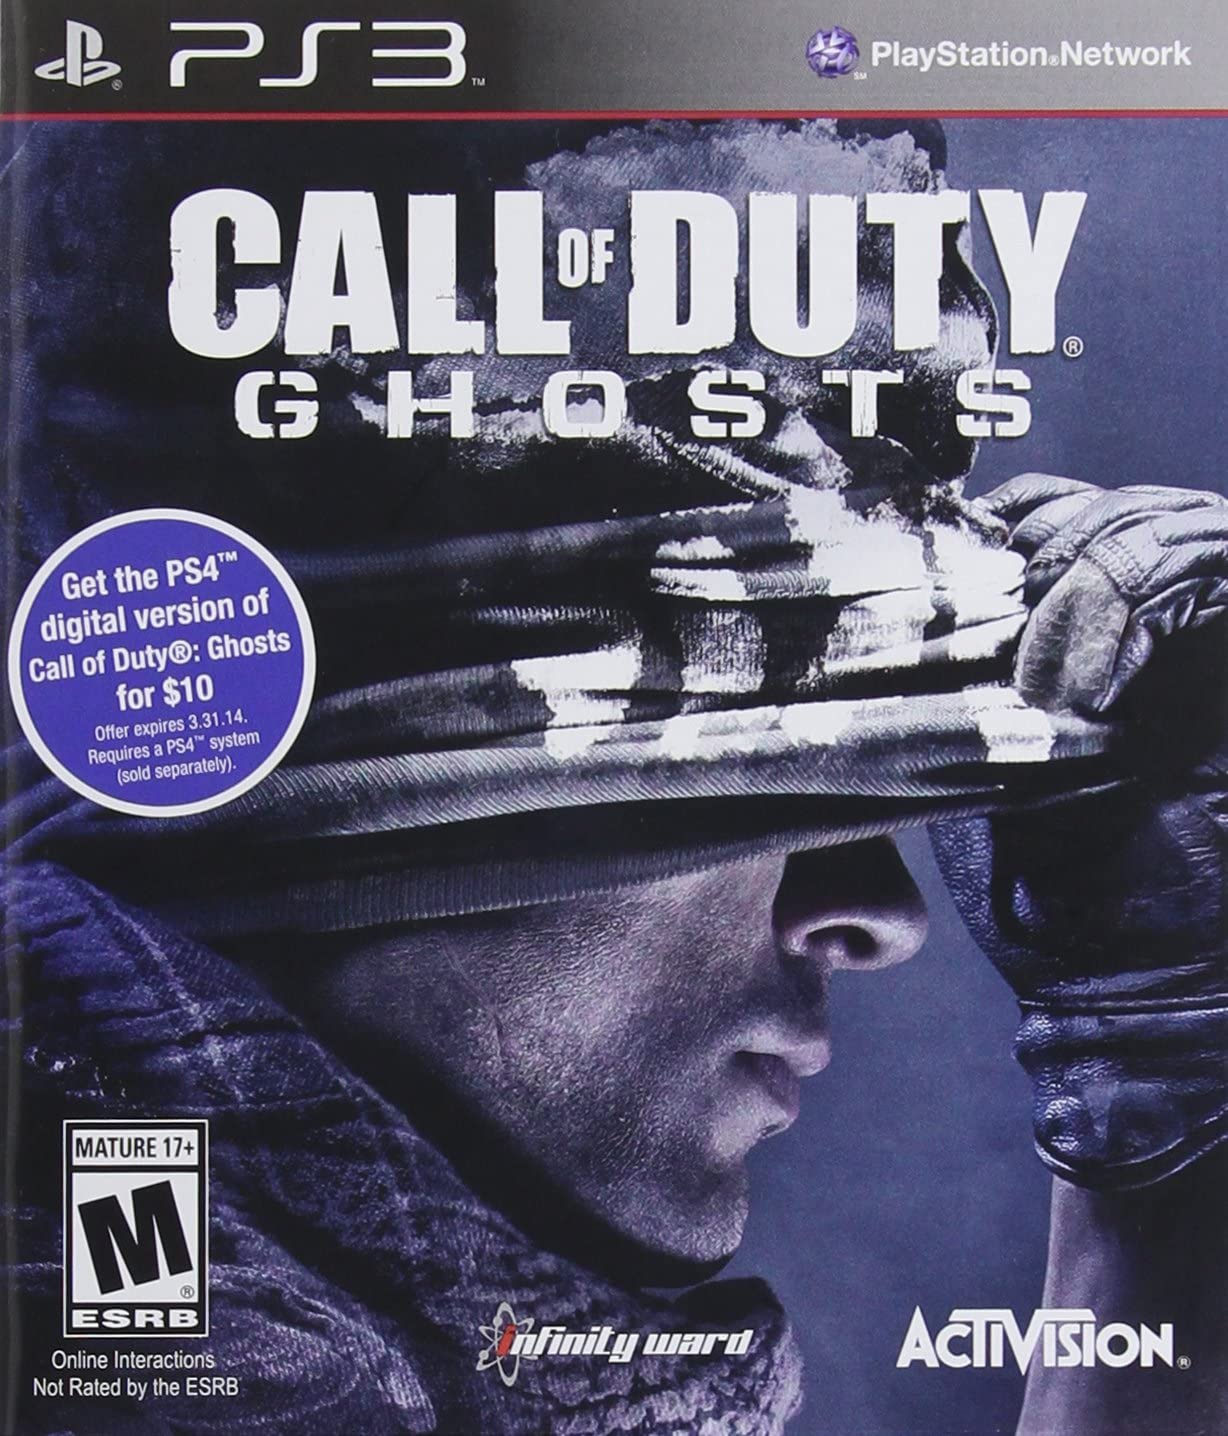 PS3 : Call of Duty: Ghosts - PlayStation 3